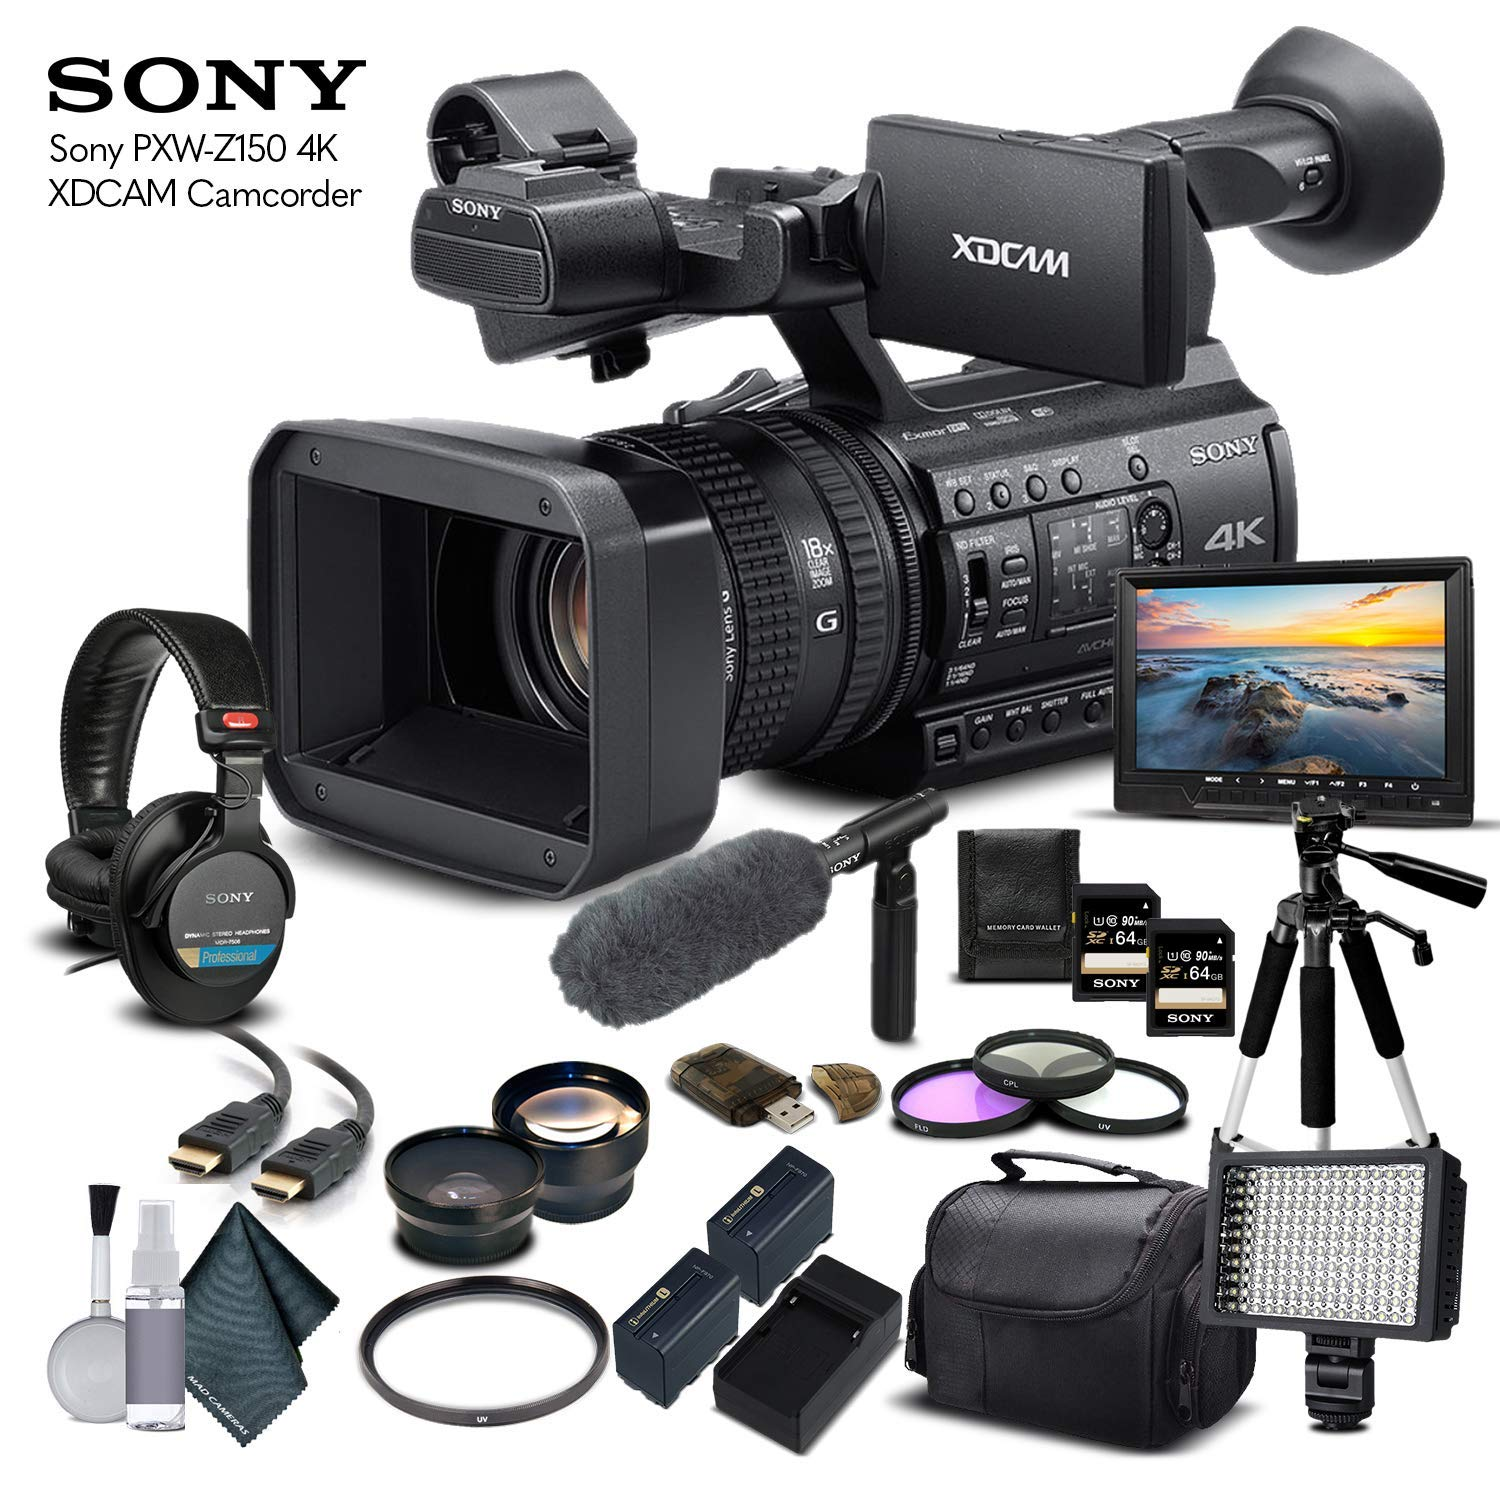 Sony PXW-Z150 4K XDCAM Camcorder (PXW-Z150) with 2-64GB Memory Card, 2 Extra Batteries, UV Filter, LED Light, Case, Tripod, Sony Shotgun Mic, Sony MDR-7506 Headphones - Professional Bundle by Mad Cameras